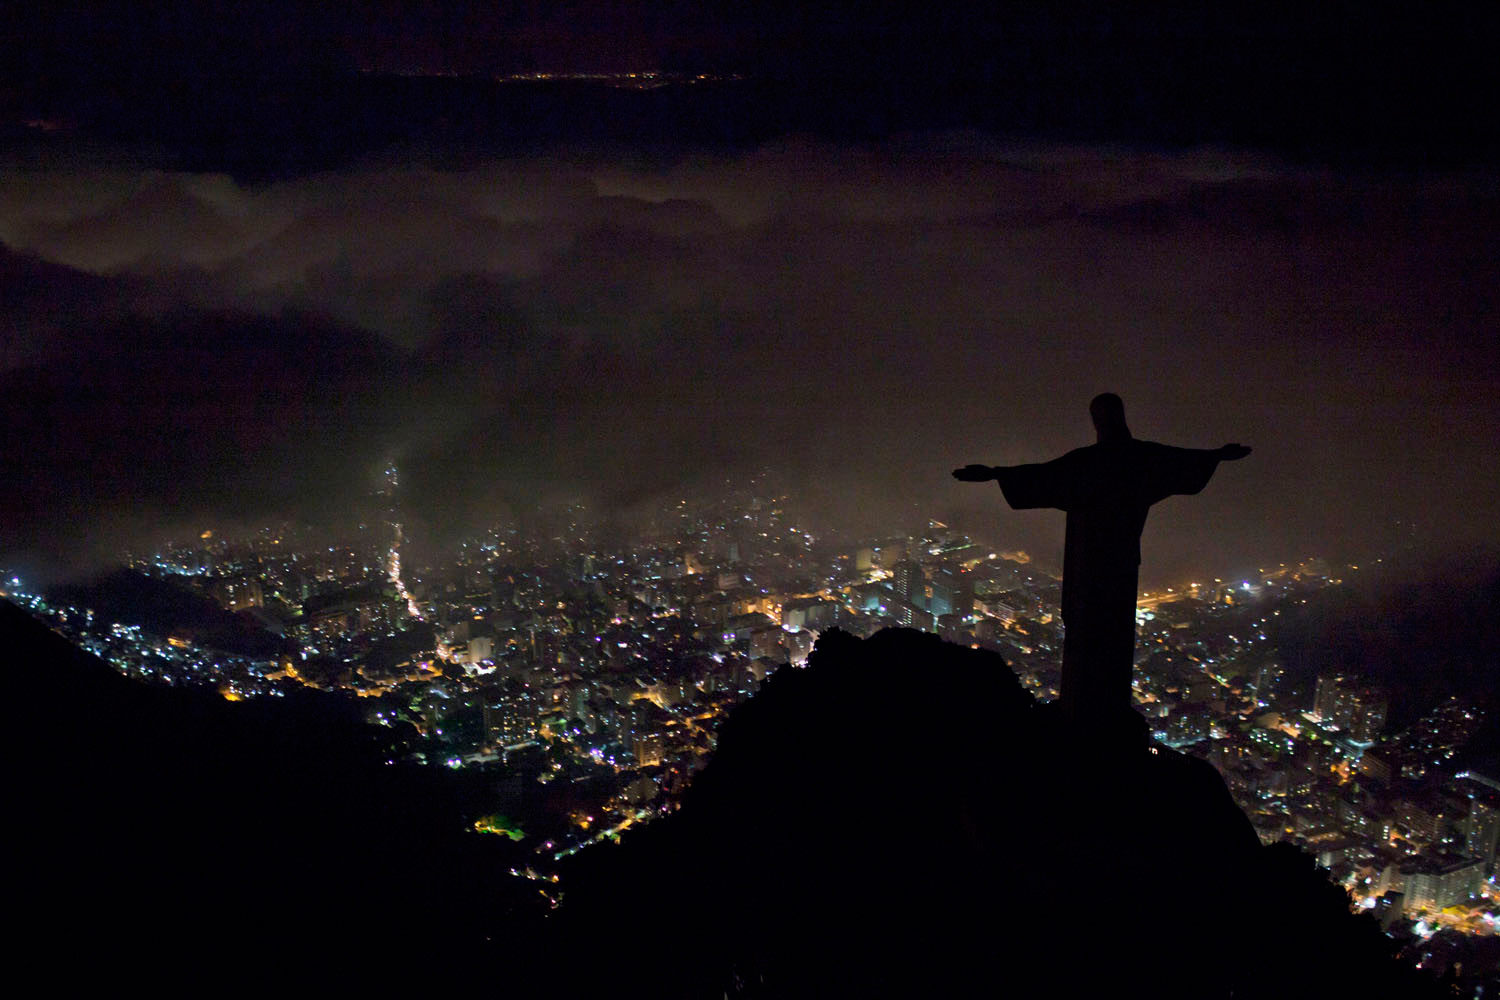 March 29, 2011. The iconic Christ the Redeemer statue stands in darkness after the lights that illuminate it were switched off to observe an hour of voluntary darkness for the global  Earth Hour  campaign in Rio de Janeiro, Brazil.